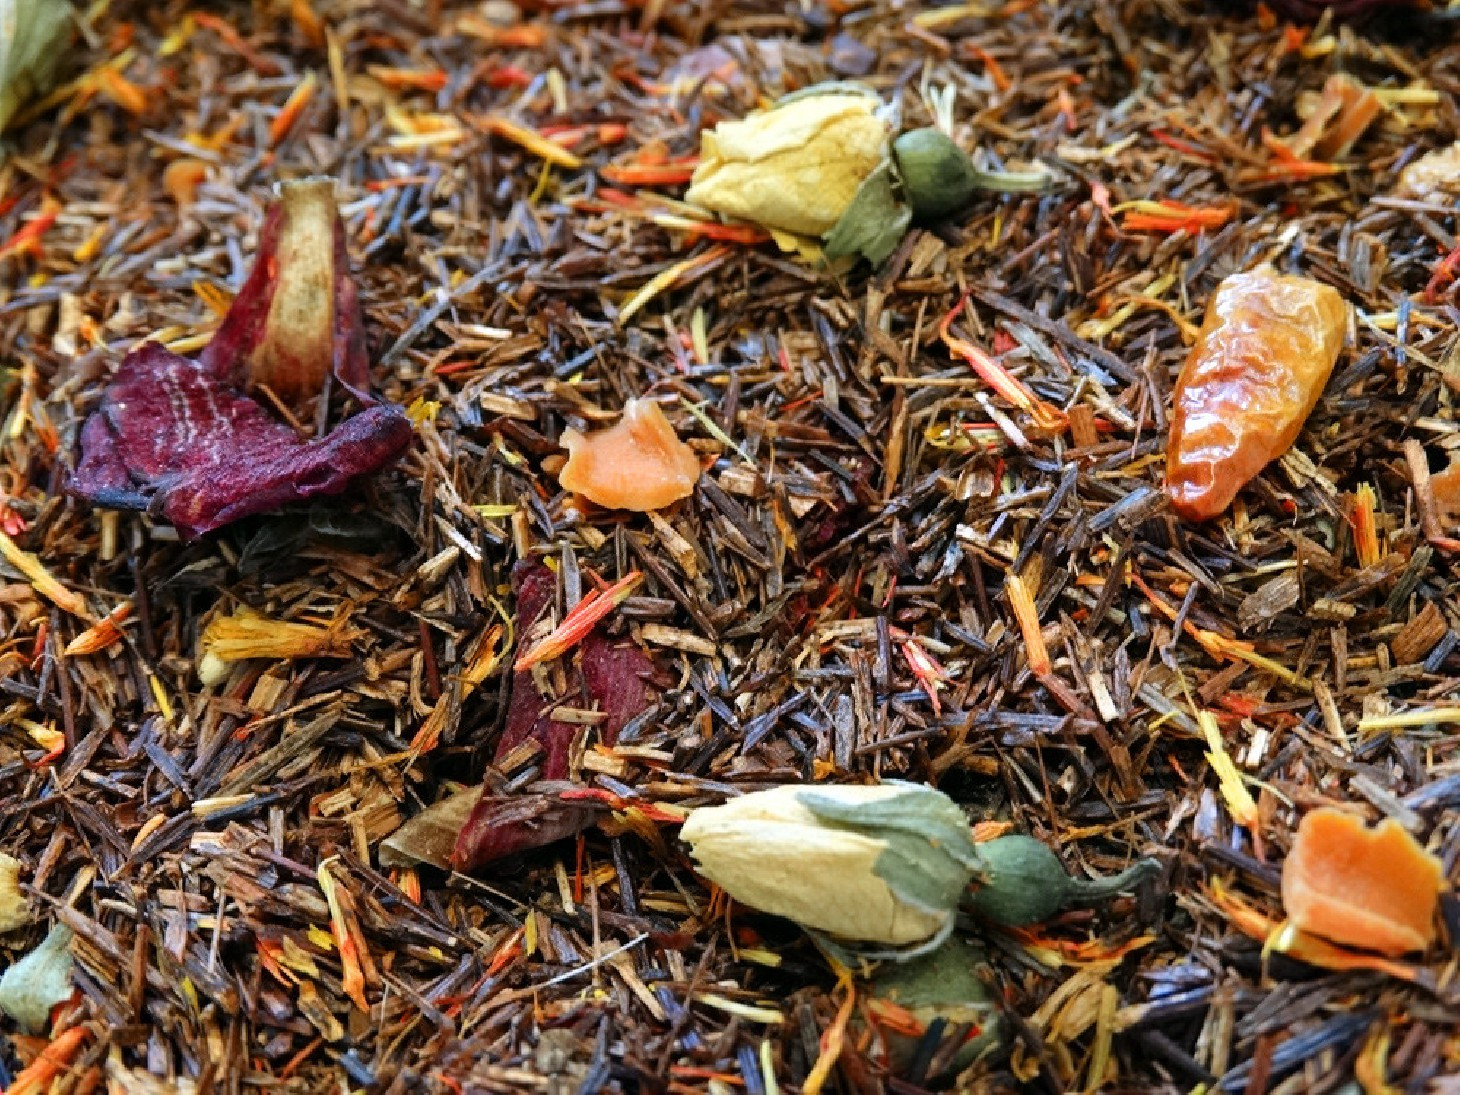 infusion dans théine rooibos dragon rouge piments oiseaux cerise kirsch cocktail tea & cie www.teacie.com